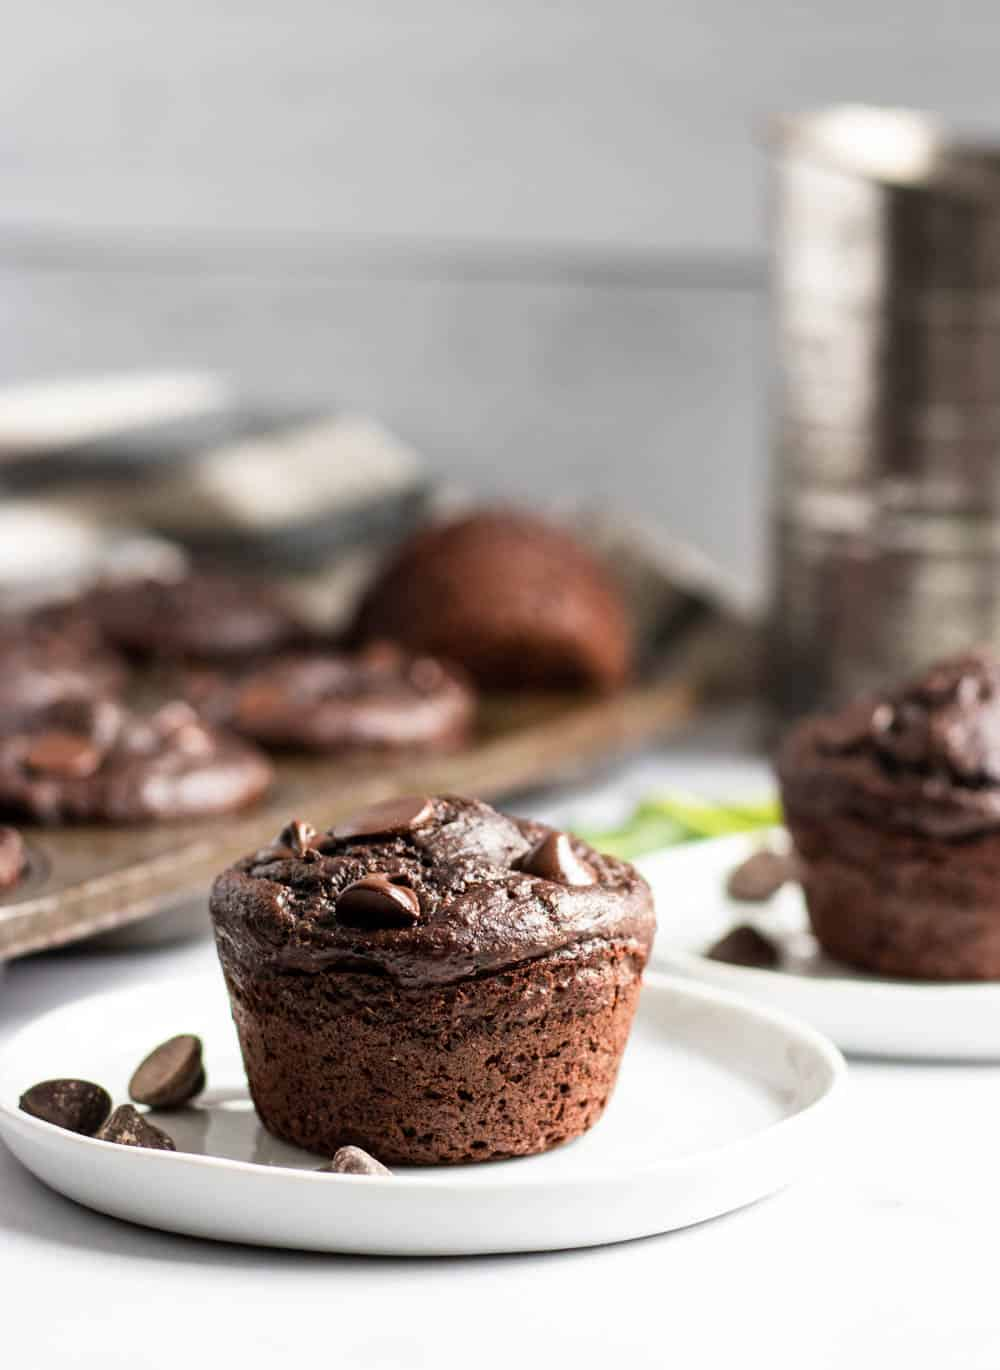 Chocolate muffin on white plate with extra chocolate chips on plate.